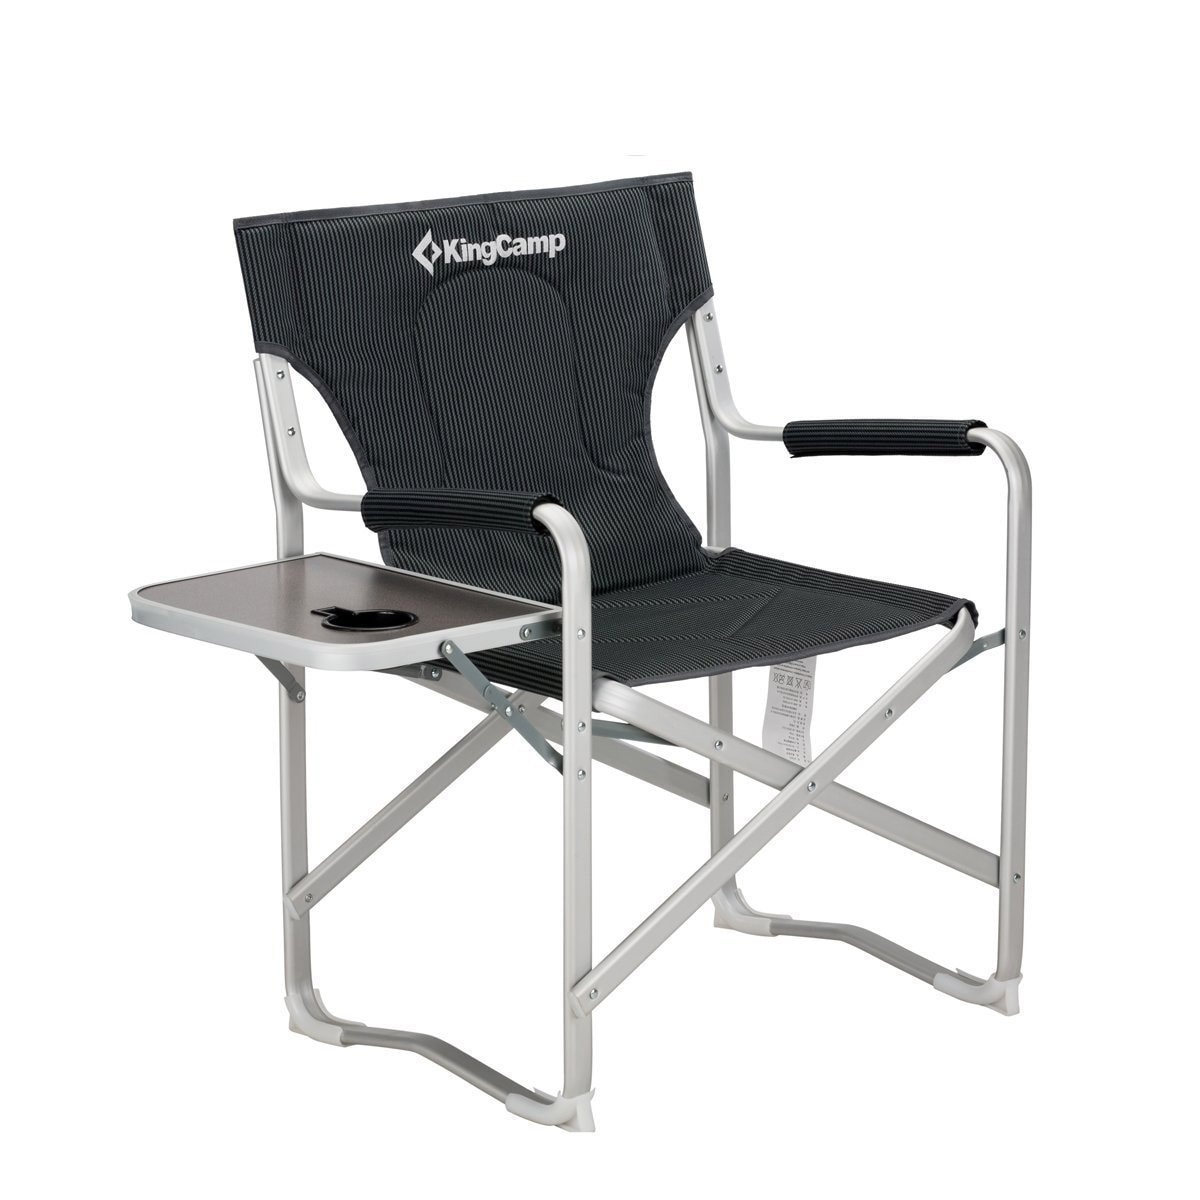 Folding Director Chair Kingcamp Director Chair Folding Aluminum Padding Portable Heavy Duty Comfort Sturdy Reclining